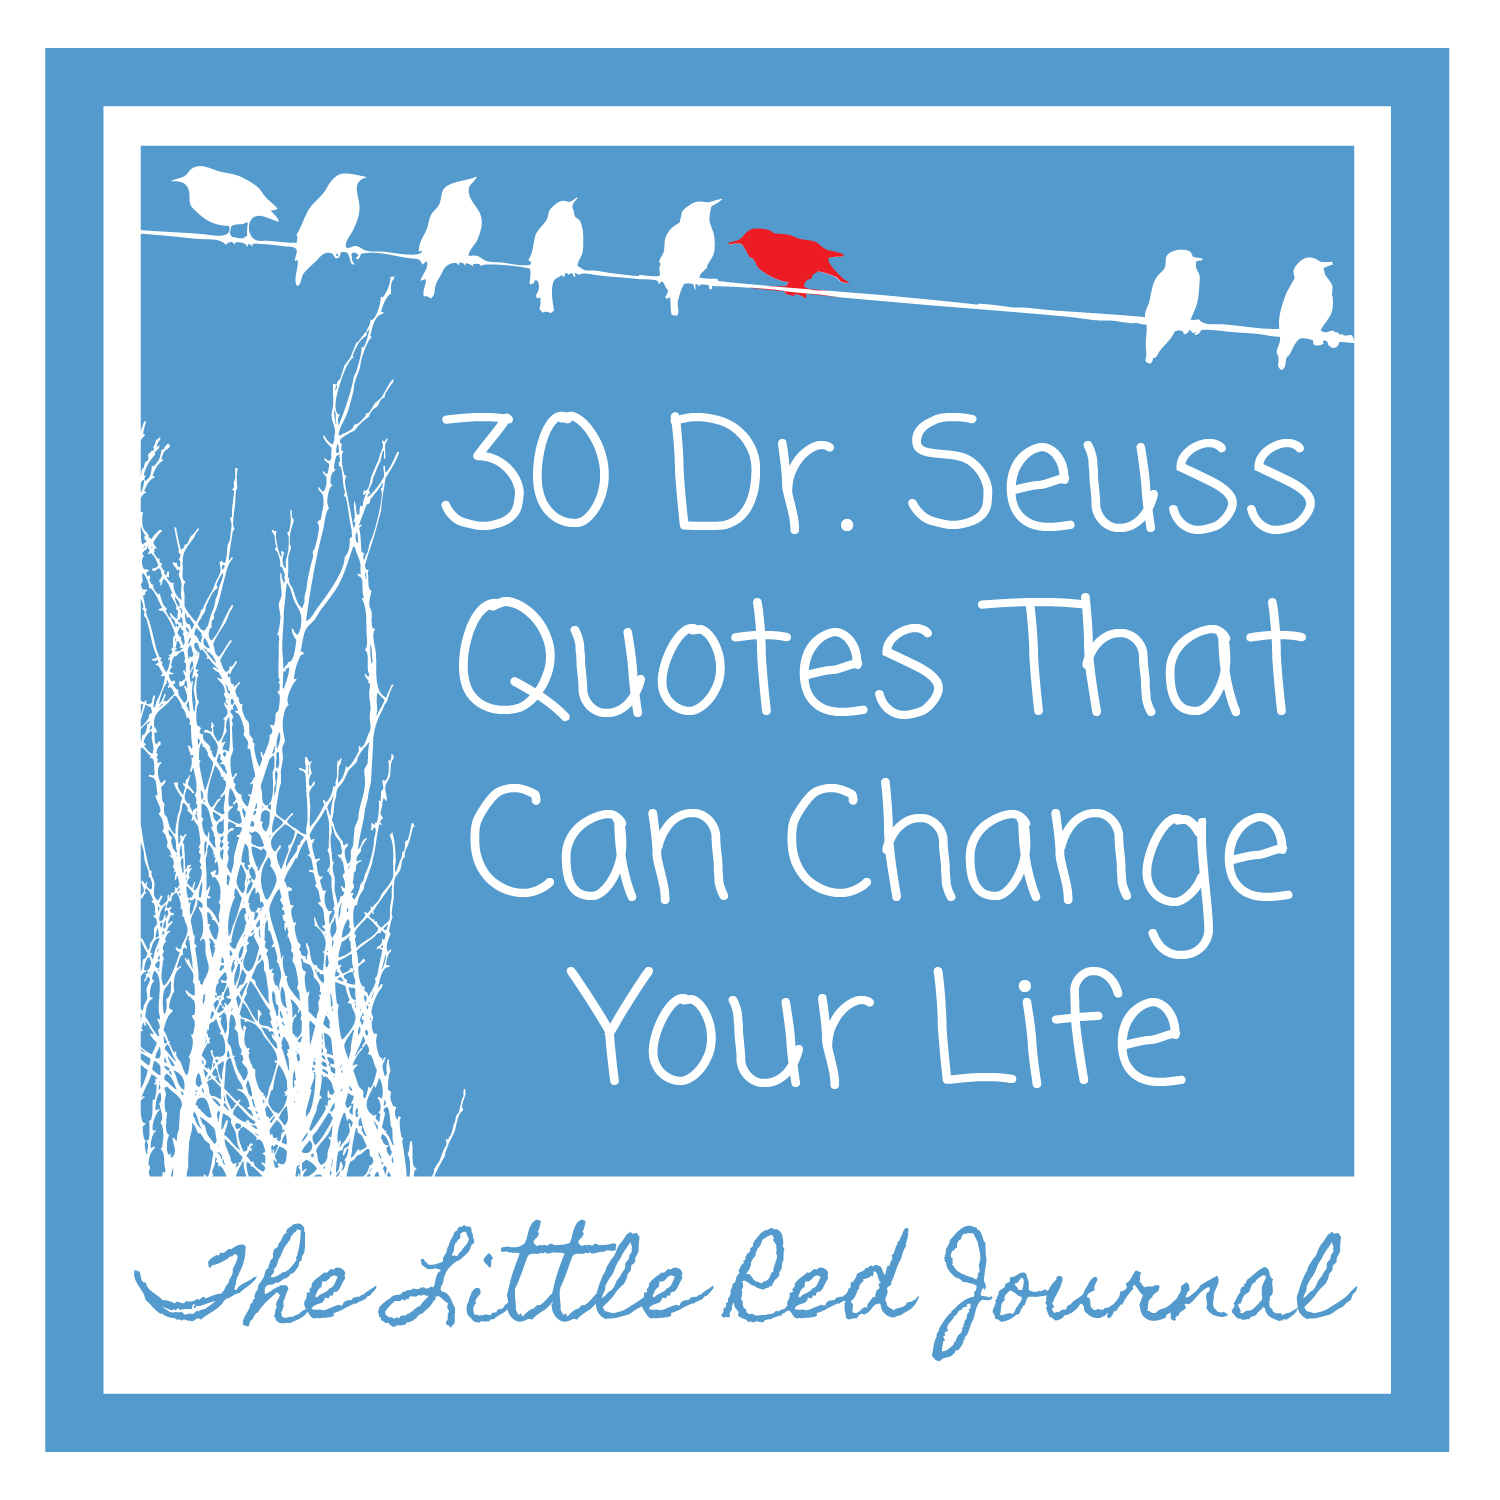 Dr Seuss Quotes About Reading Quotesgram. Trust Quotes In Relationships. Beach Volleyball Quotes. Birthday Quotes Nietzsche. Short Kilig Quotes Tagalog. Harry Potter Quotes About School. Depression Quotes In Telugu. Cute Quotes Love Life. Sad Quotes Of Friendship